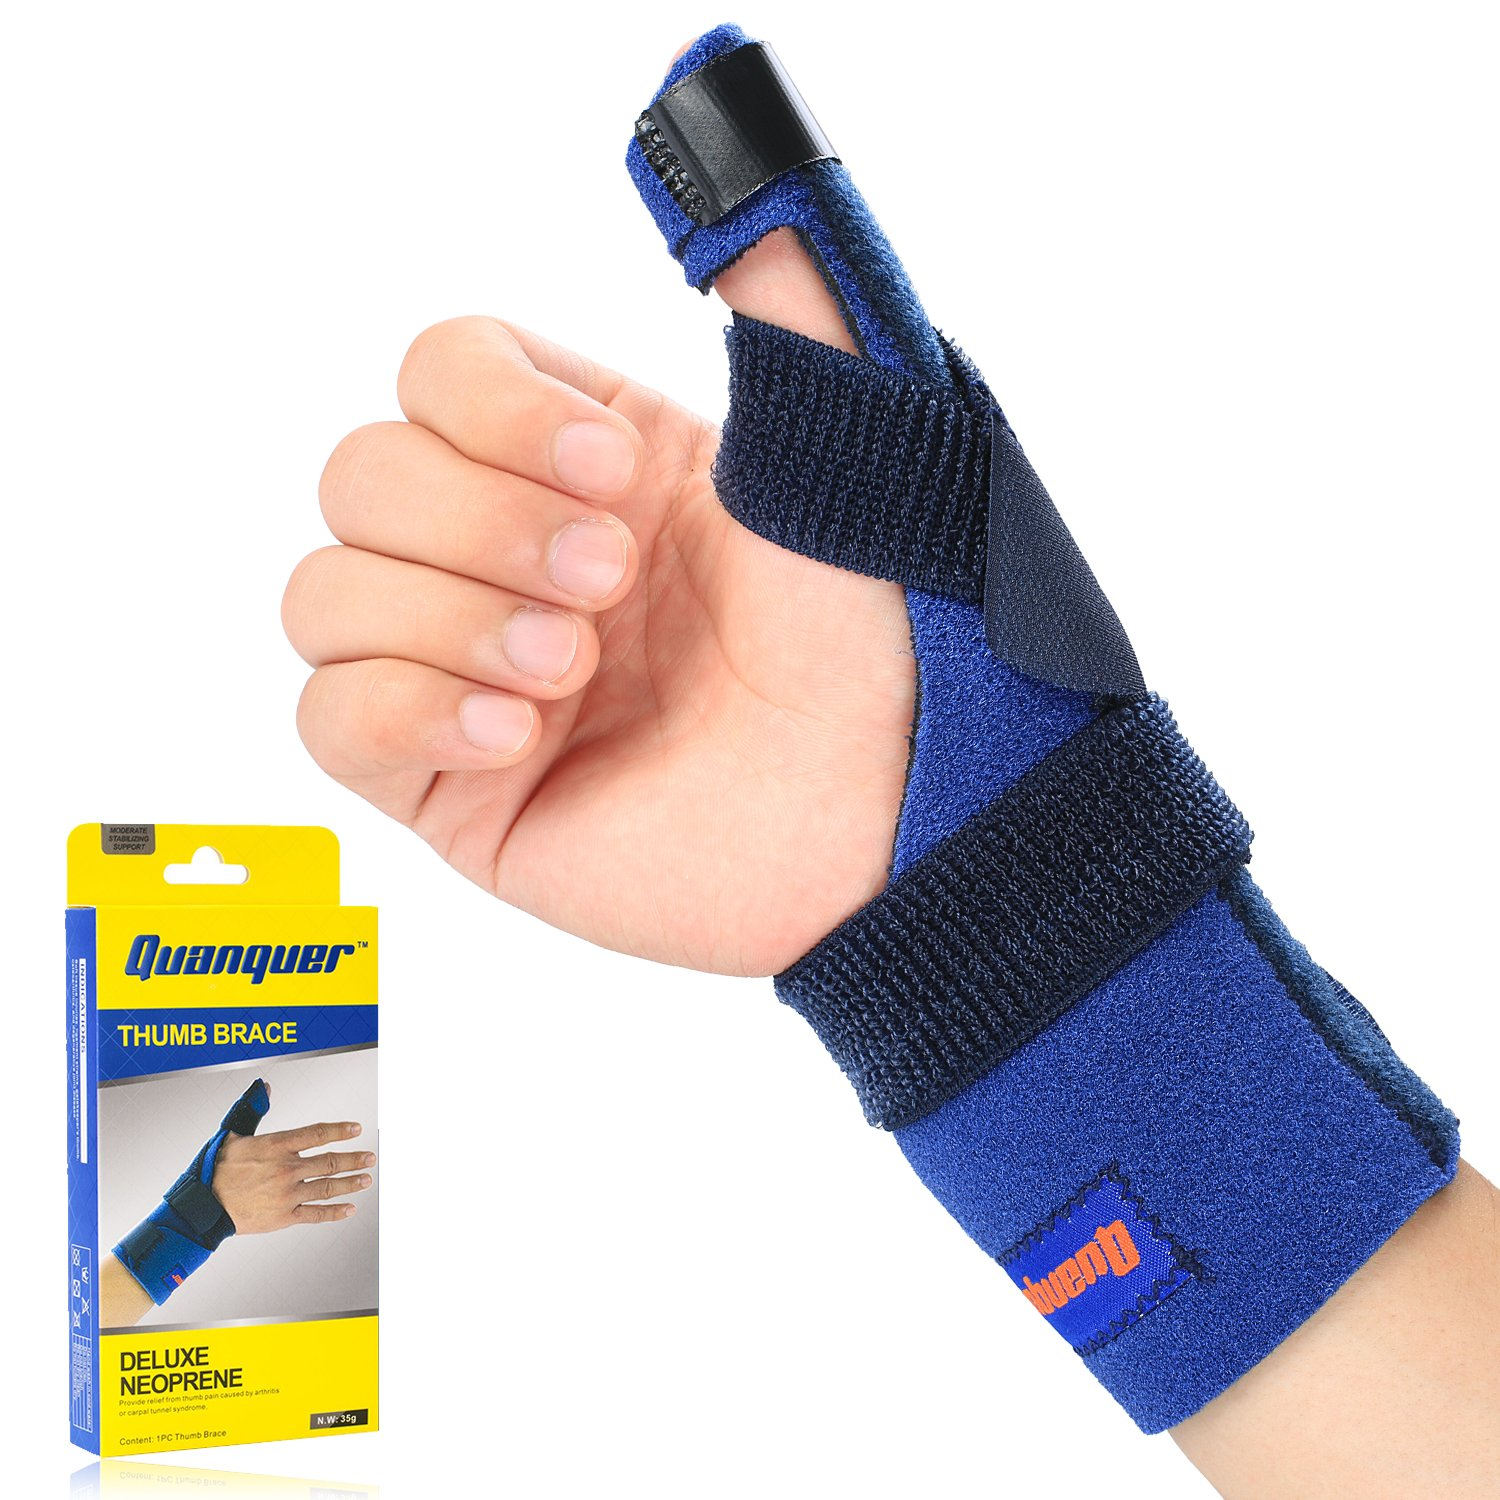 Quanquer Thumb Brace by, Adjustable Thumb Spica Splint for Pain, Sprained, Arthritis, Tendonitis- Best Trigger Thumb Immobilizer for thumb CMC Restriction, Thumb Support and Guard- Left or Right Hand by Quanquer